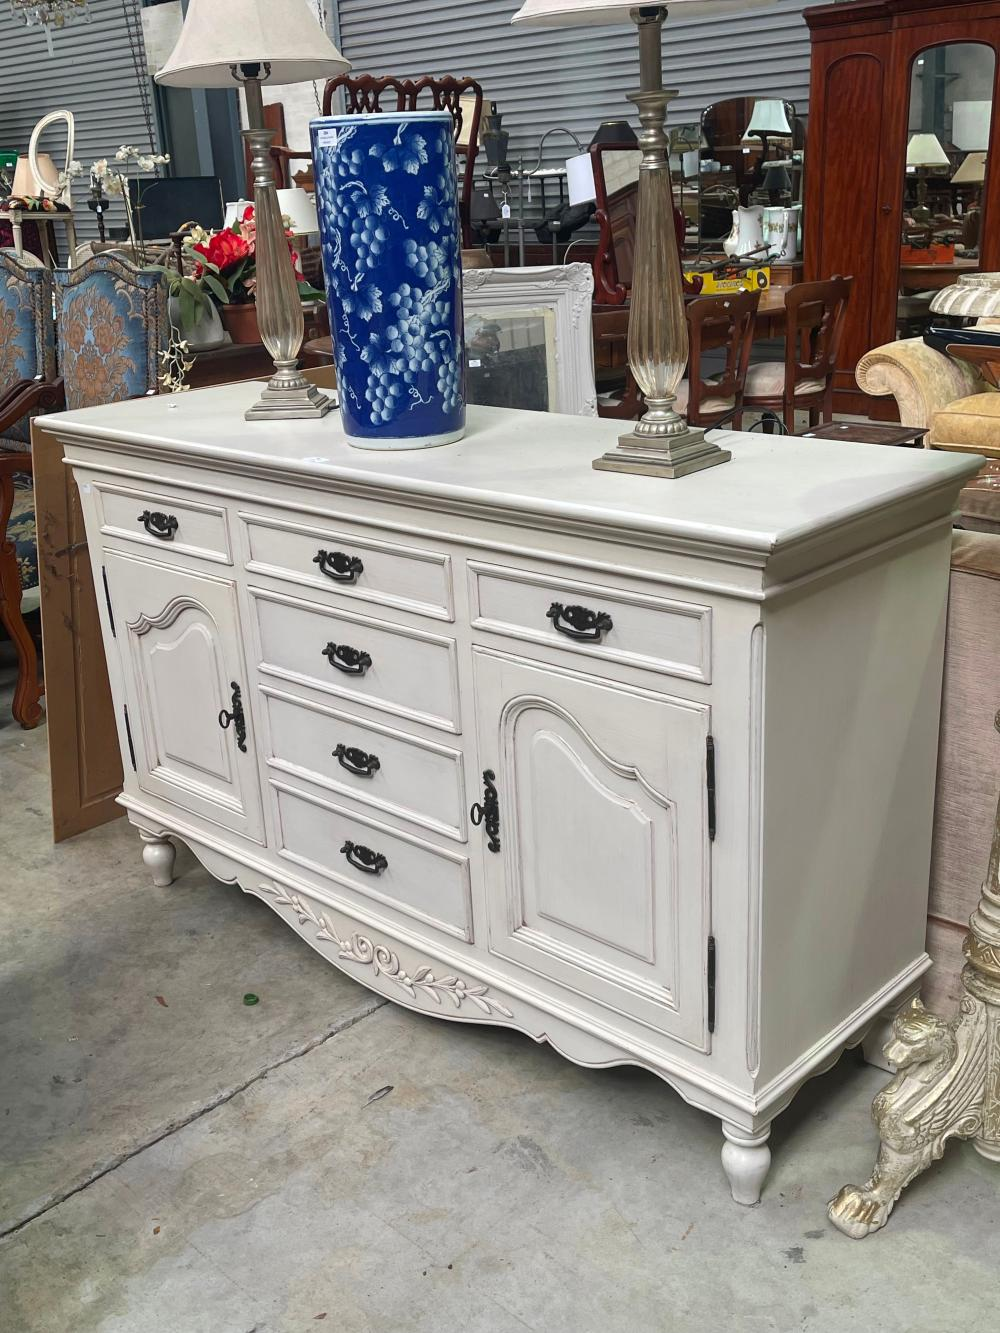 Painted Country Corner French style sideboard, approx 95cm H x 154cm W x 48cm D